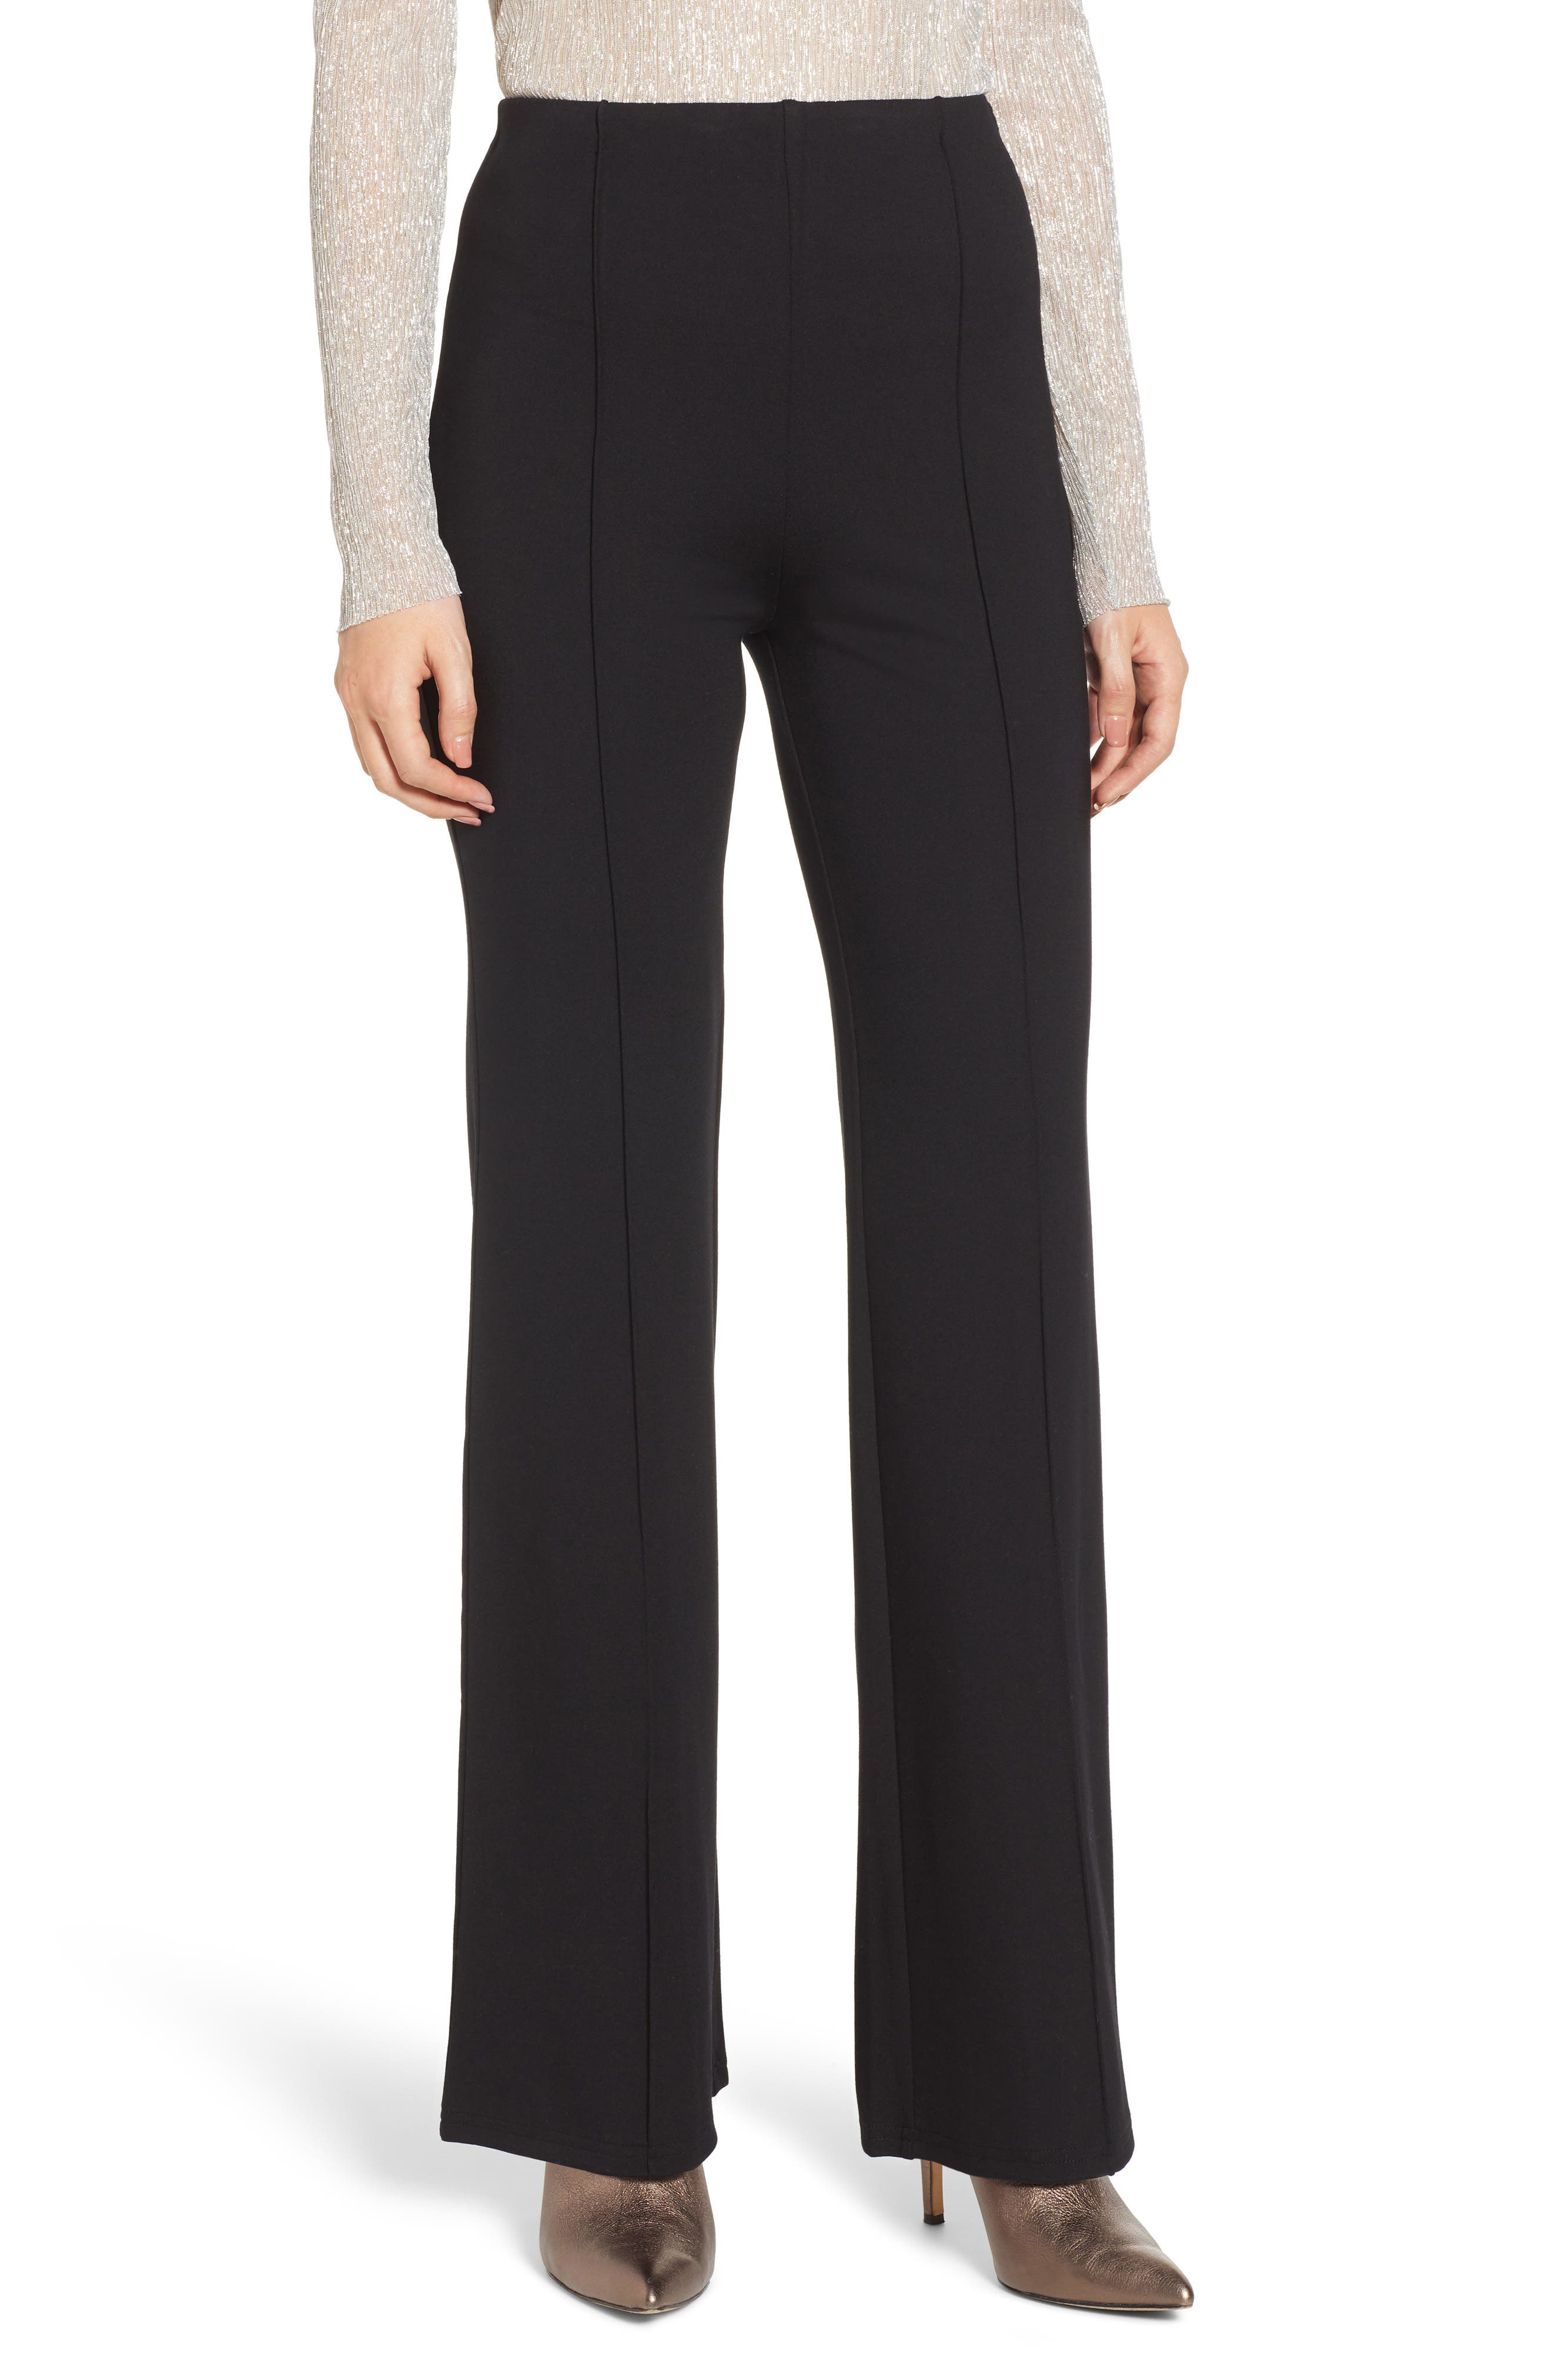 Leith High Waist Flare Leg Pants, Black